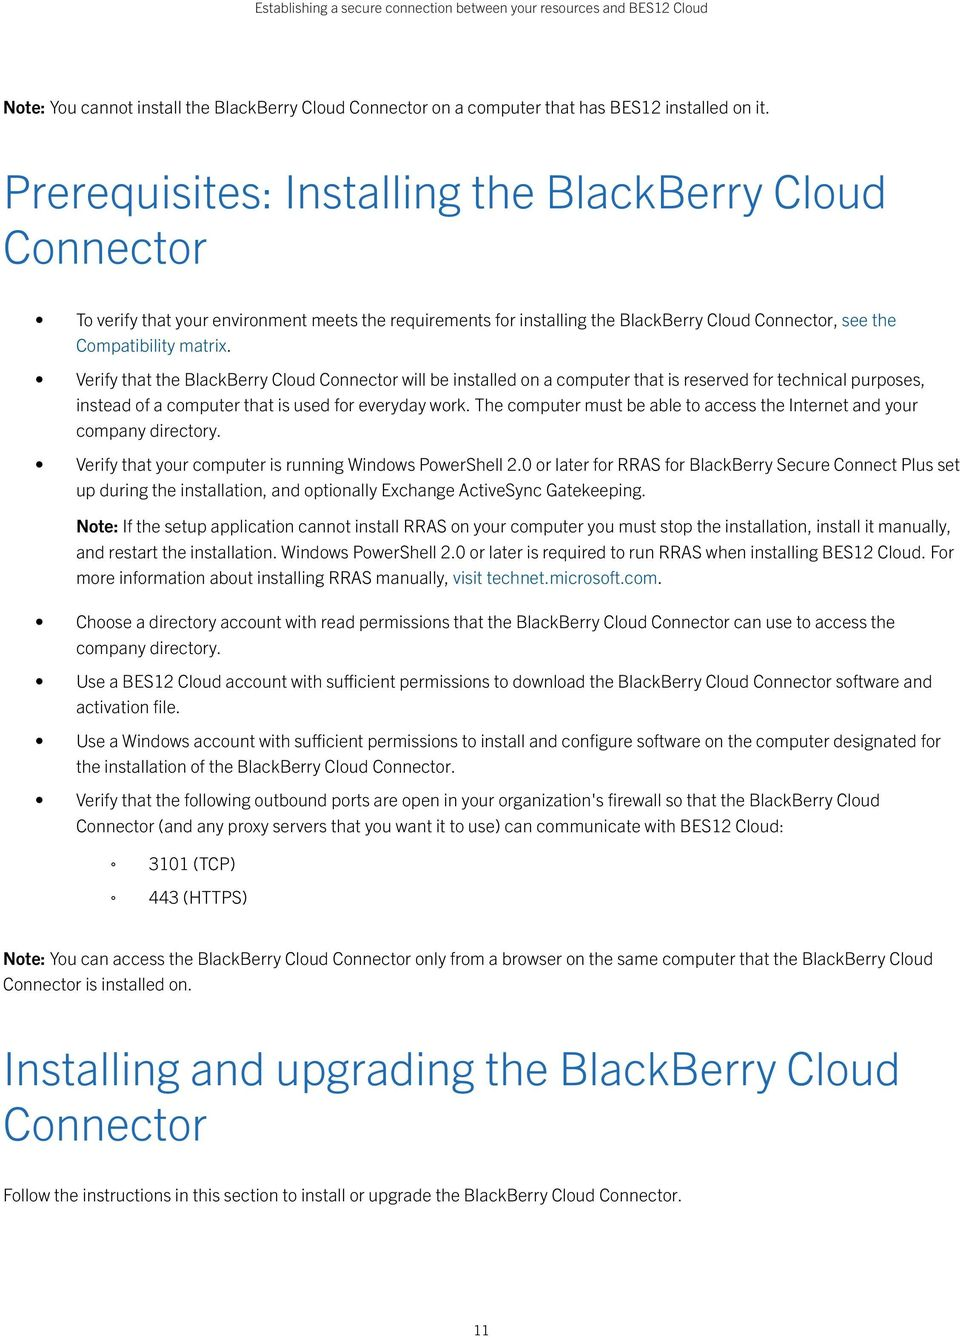 Verify that the BlackBerry Cloud Connector will be installed on a computer that is reserved for technical purposes, instead of a computer that is used for everyday work.